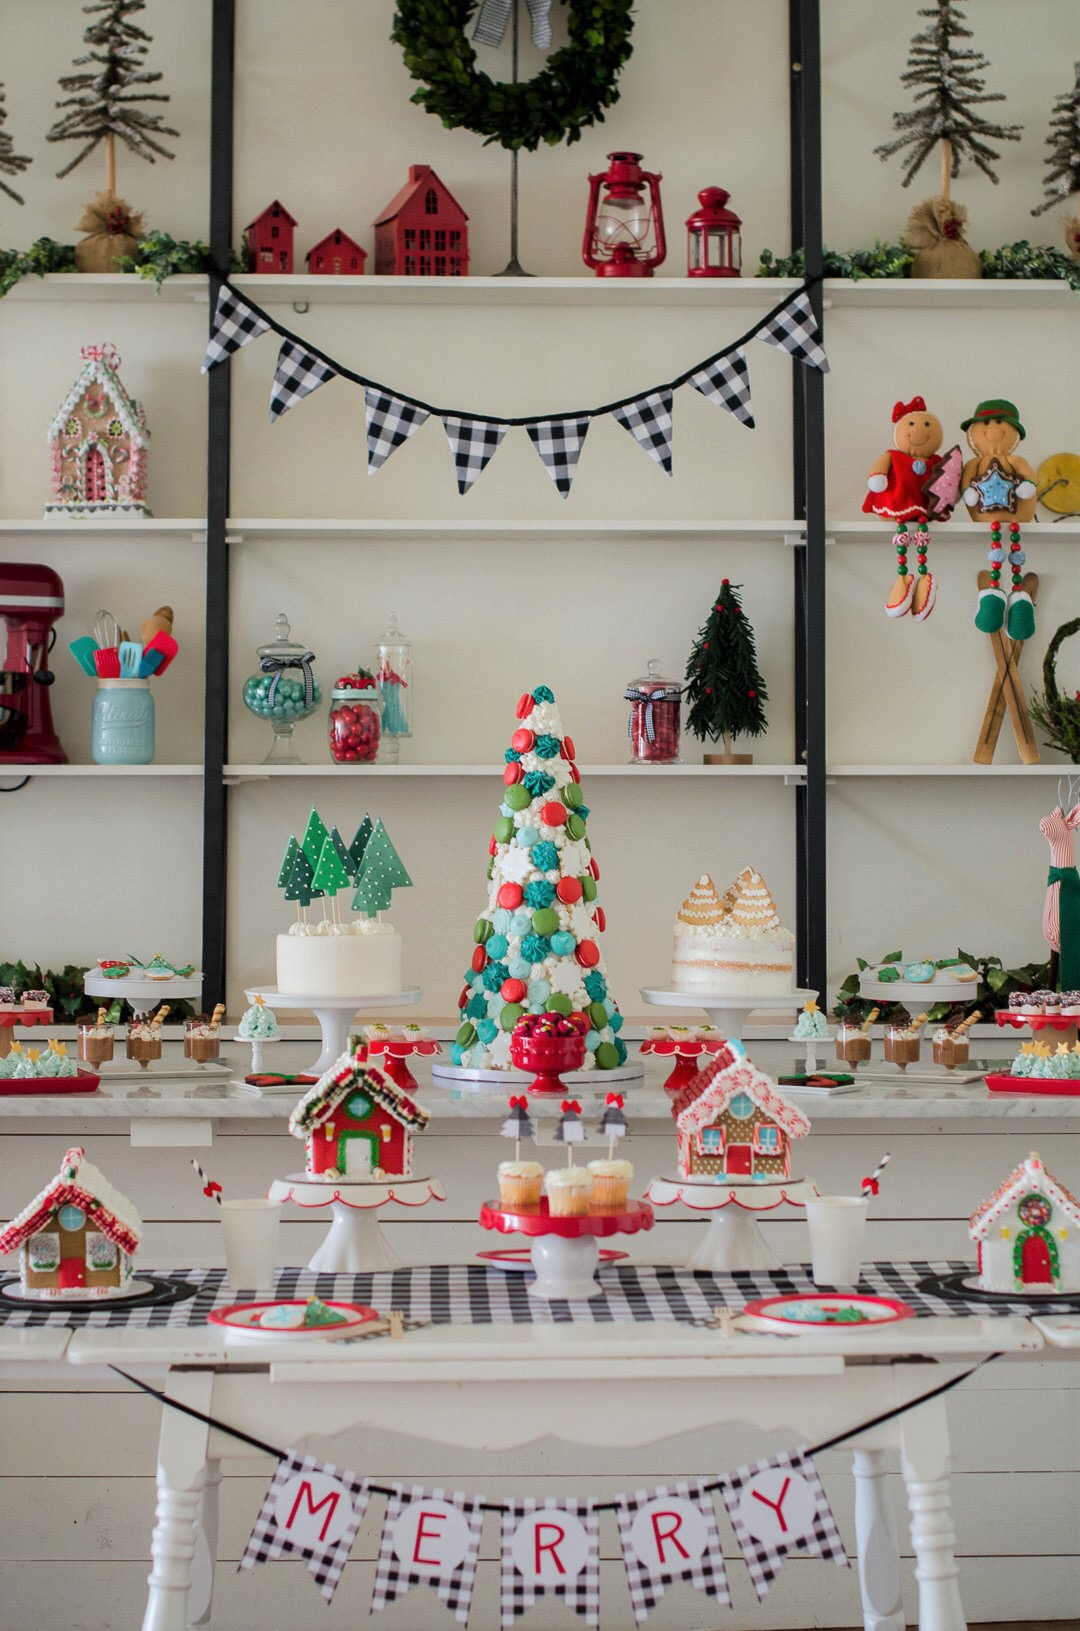 Beautifully decorated gingerbread houses and desserts at this lovely Christmas party. See more holiday party inspiration from Austin based party stylist Mint Event Design at www.minteventdesign.com #desserttable #christmasdesserts #holidayparty #holidays #partyideas #christmasparty #holidaypartyideas